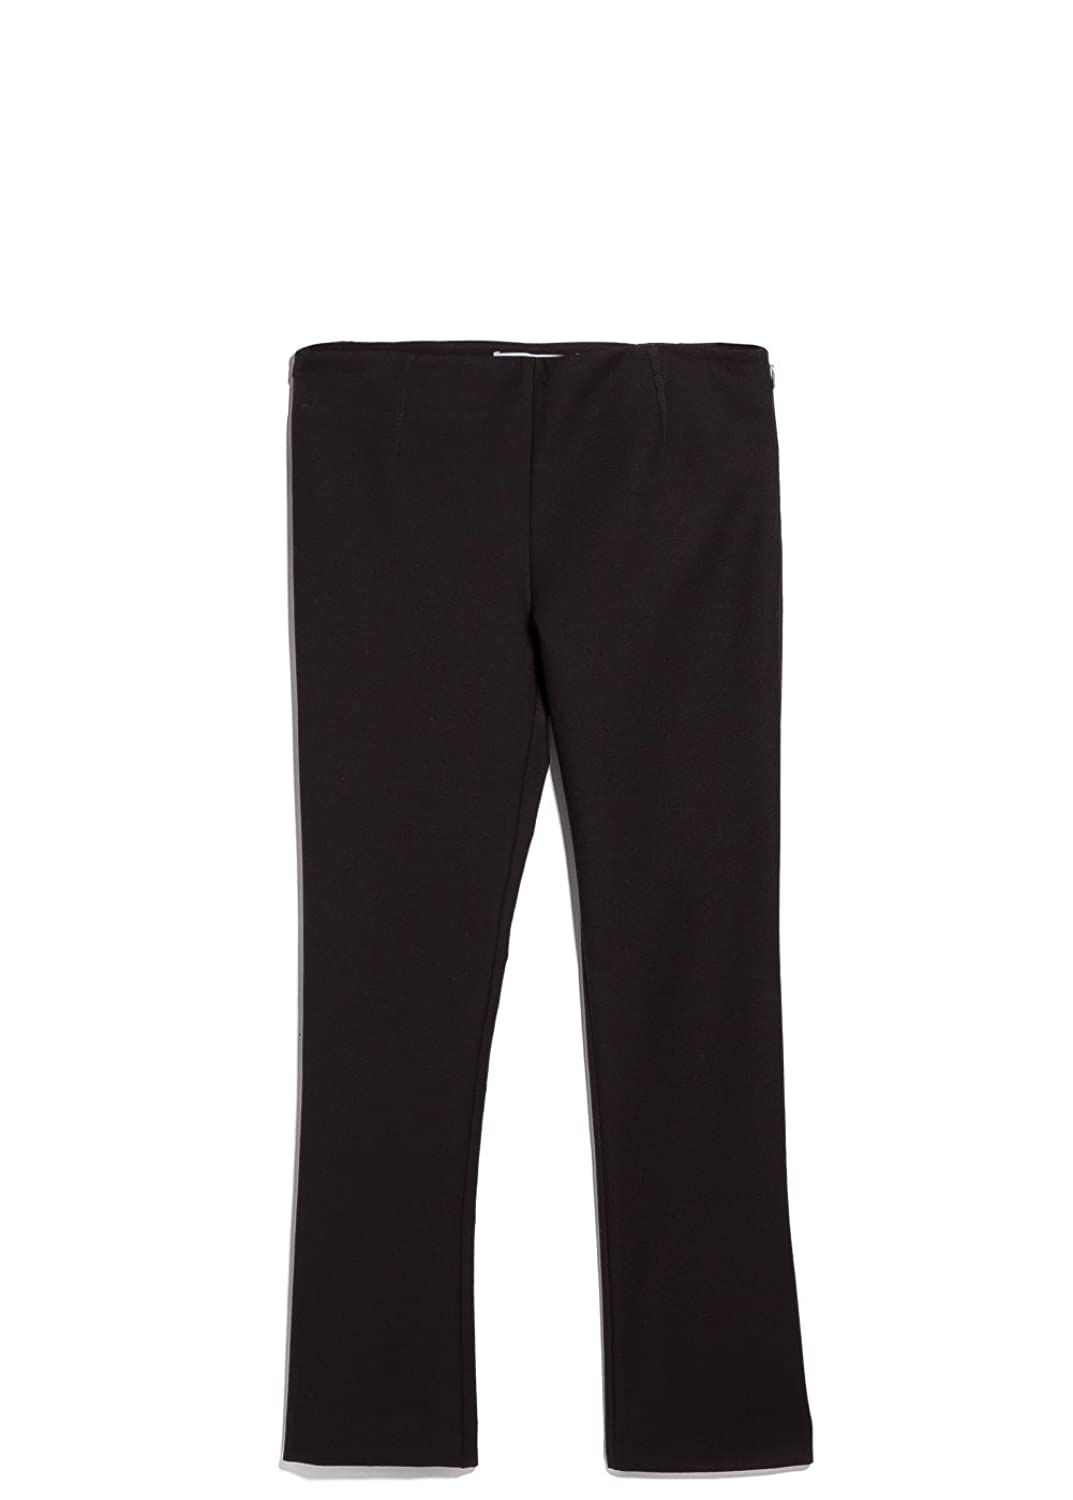 Mango Women's Cotton-Blend Trousers